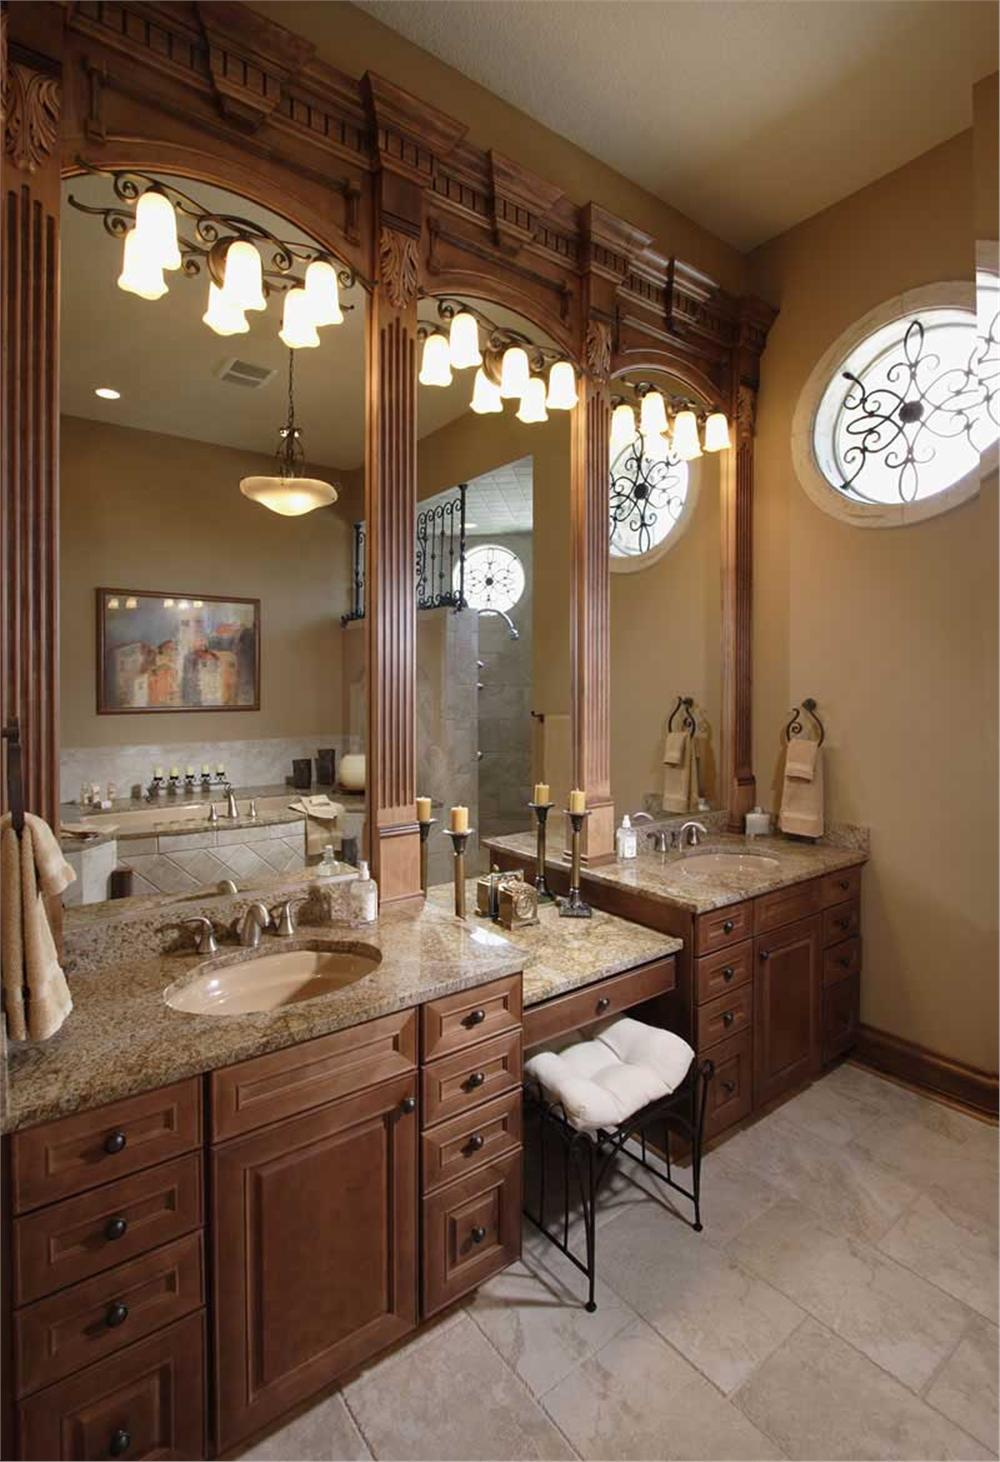 Wondrous Two Vanity Bathrooms Practical Solution To A Shared Space Interior Design Ideas Skatsoteloinfo